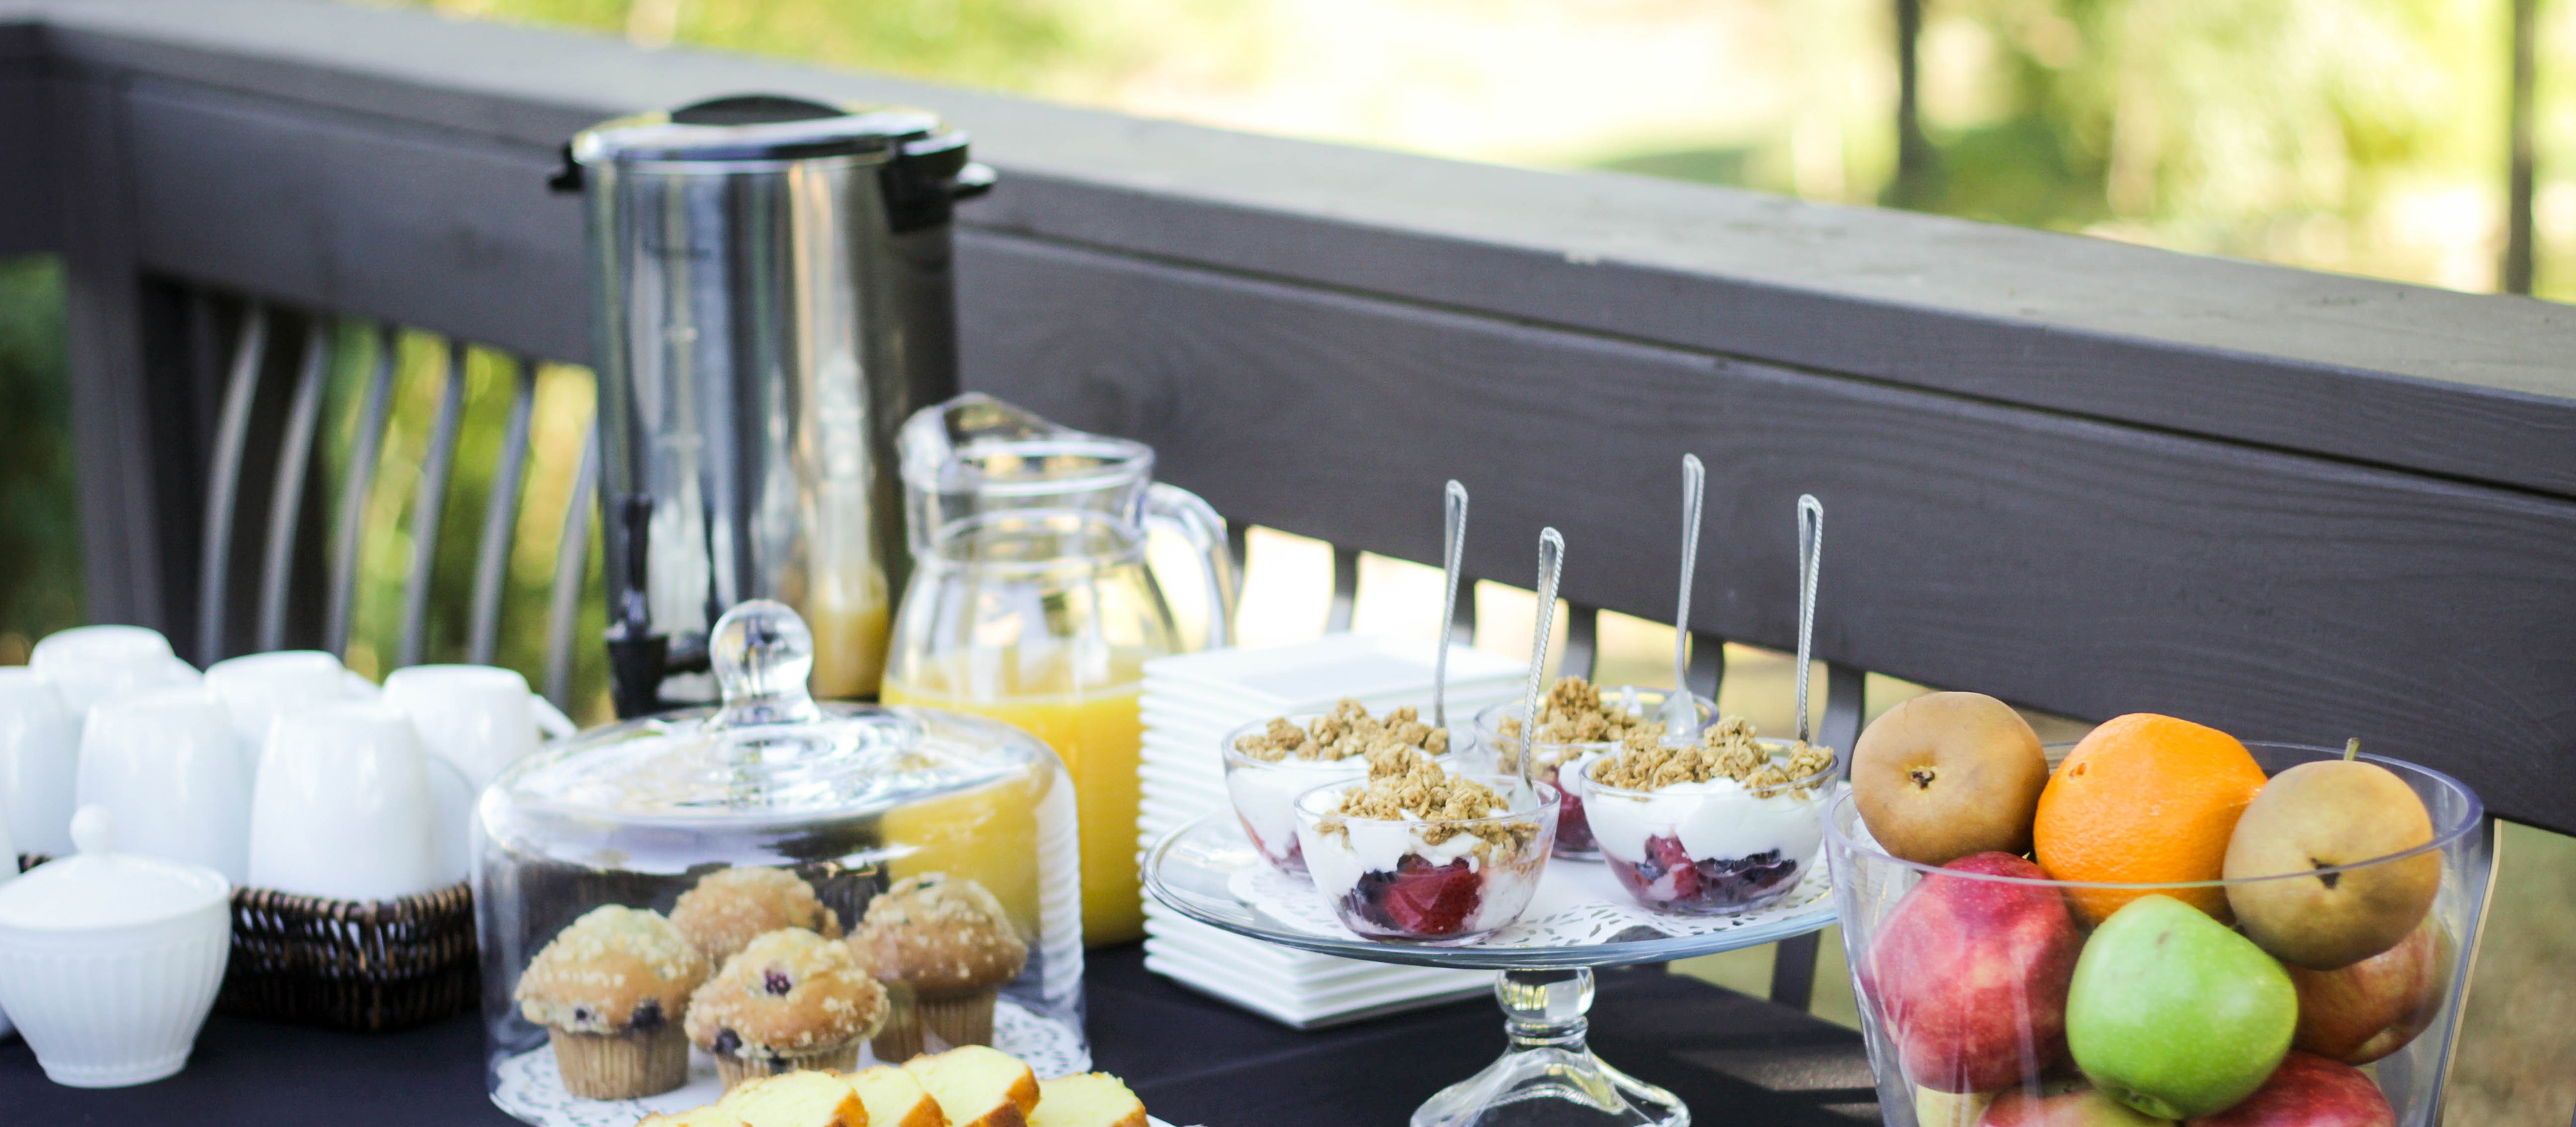 Light breakfast spread at Music and Mimosas events at Oliver Winery.